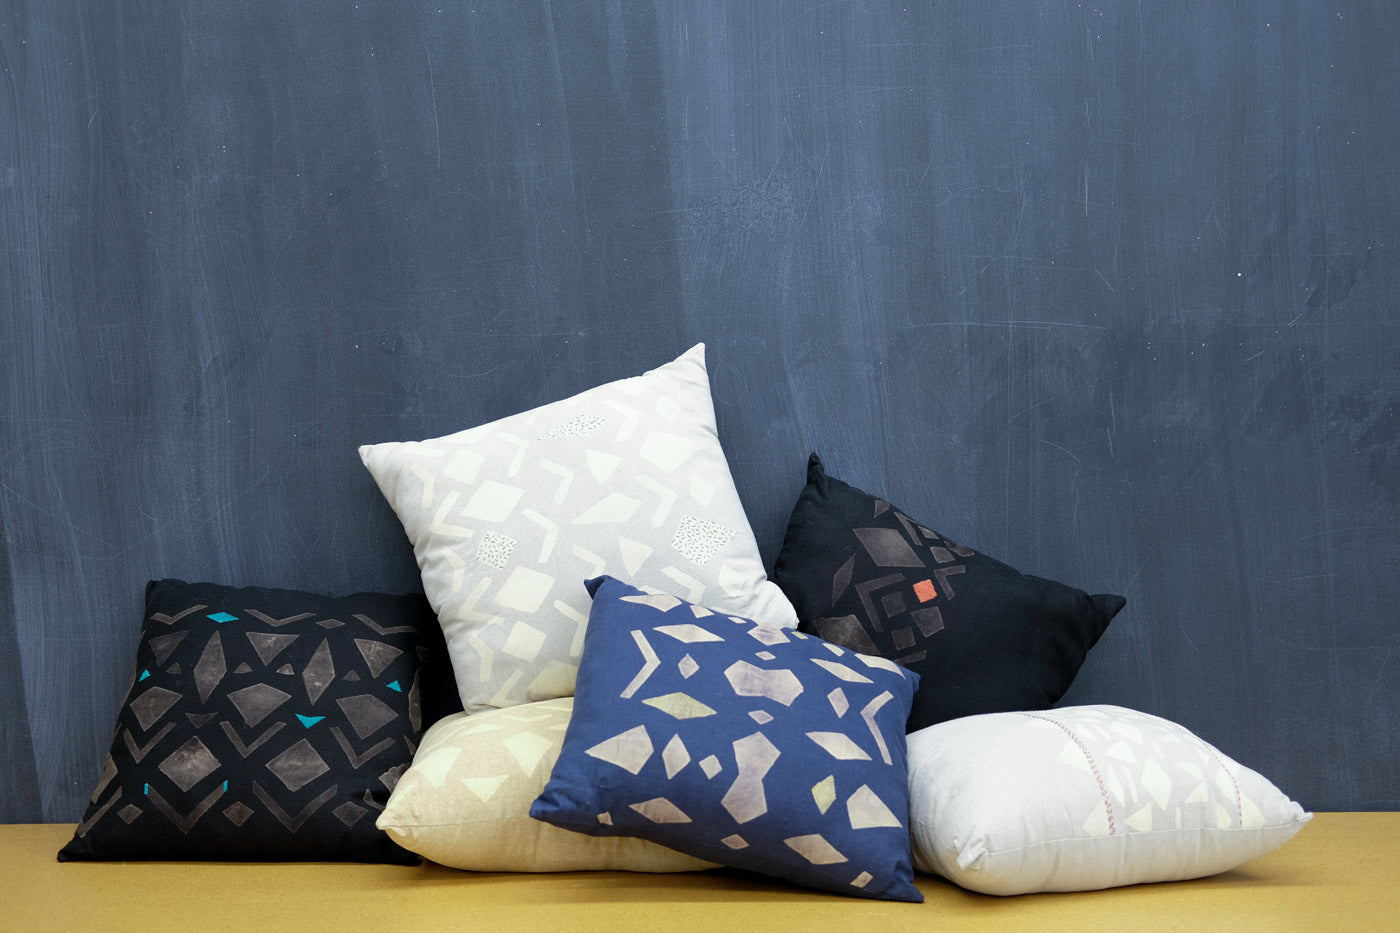 Hand-Printed and Embroidered Pillows